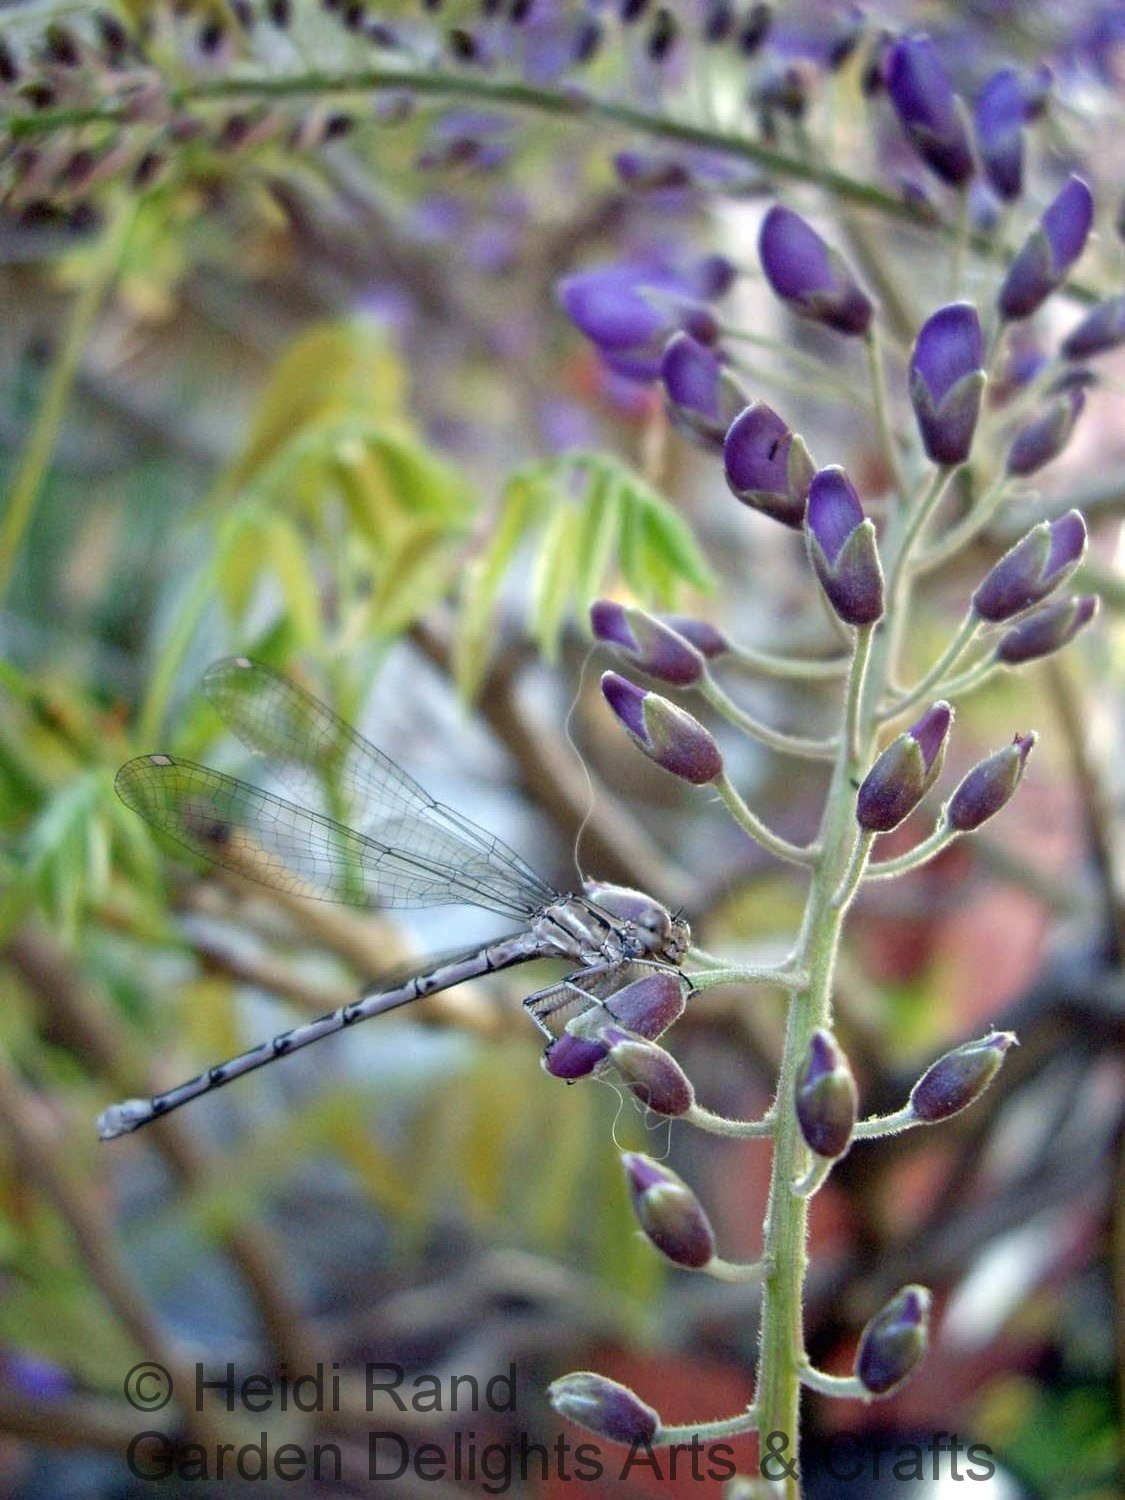 Blue darning needle on wisteria